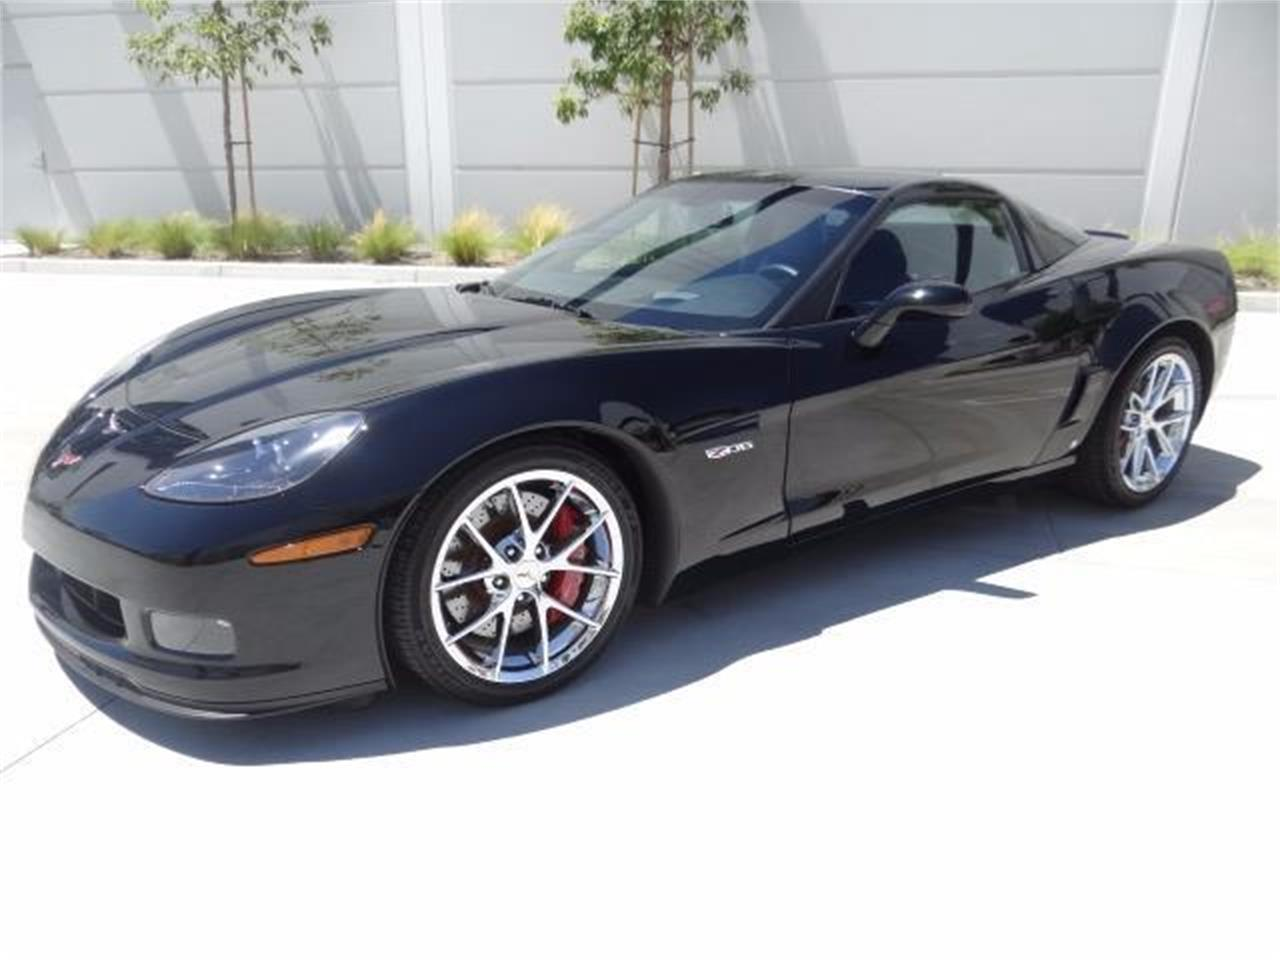 Large Picture of '09 Chevrolet Corvette Z06 - $44,000.00 Offered by West Coast Corvettes - LD7C